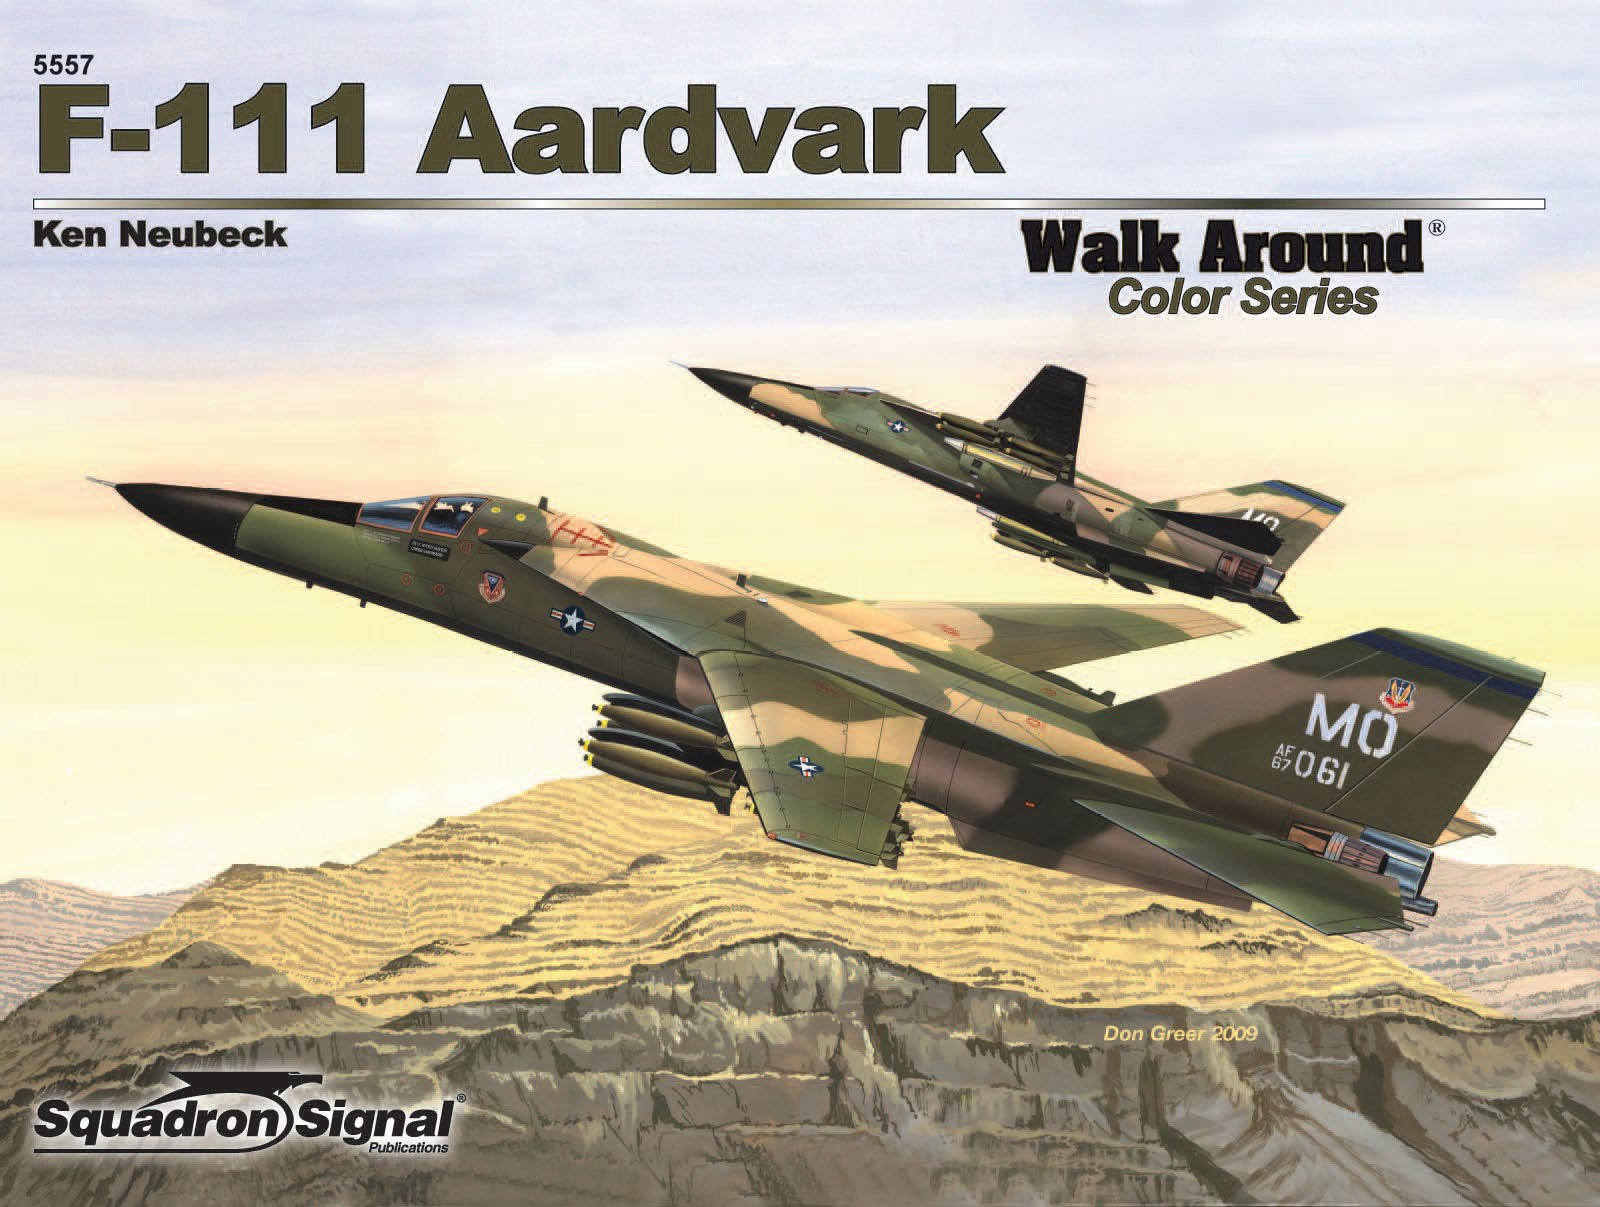 111 Aardvark - Walk Around F 111 Aardvark For Sale